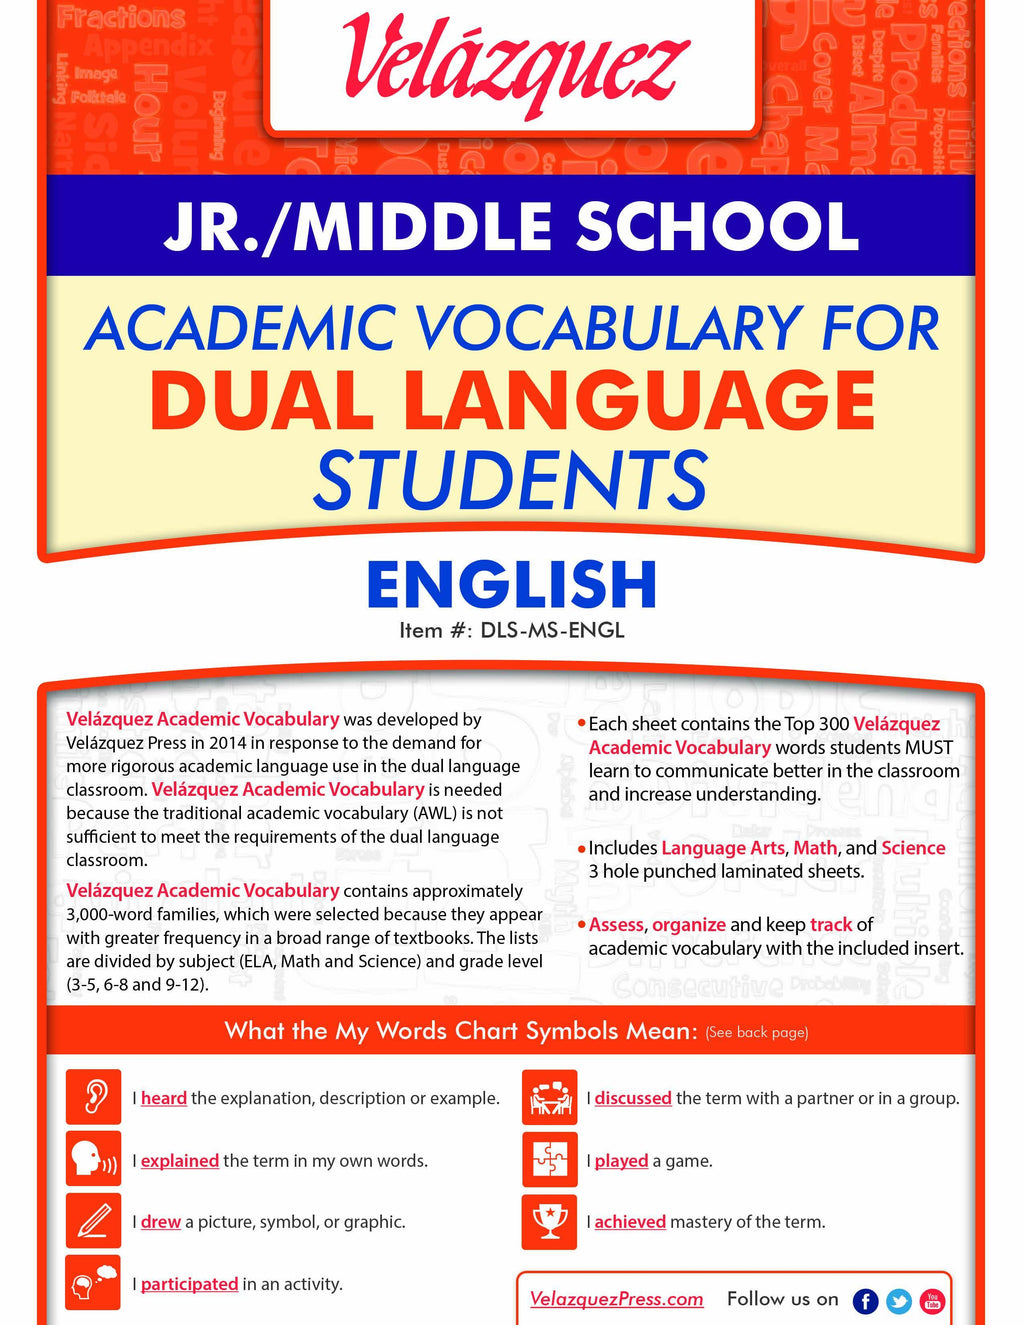 Velázquez Academic Vocabulary for Dual Language Students - Jr./Middle School (English)